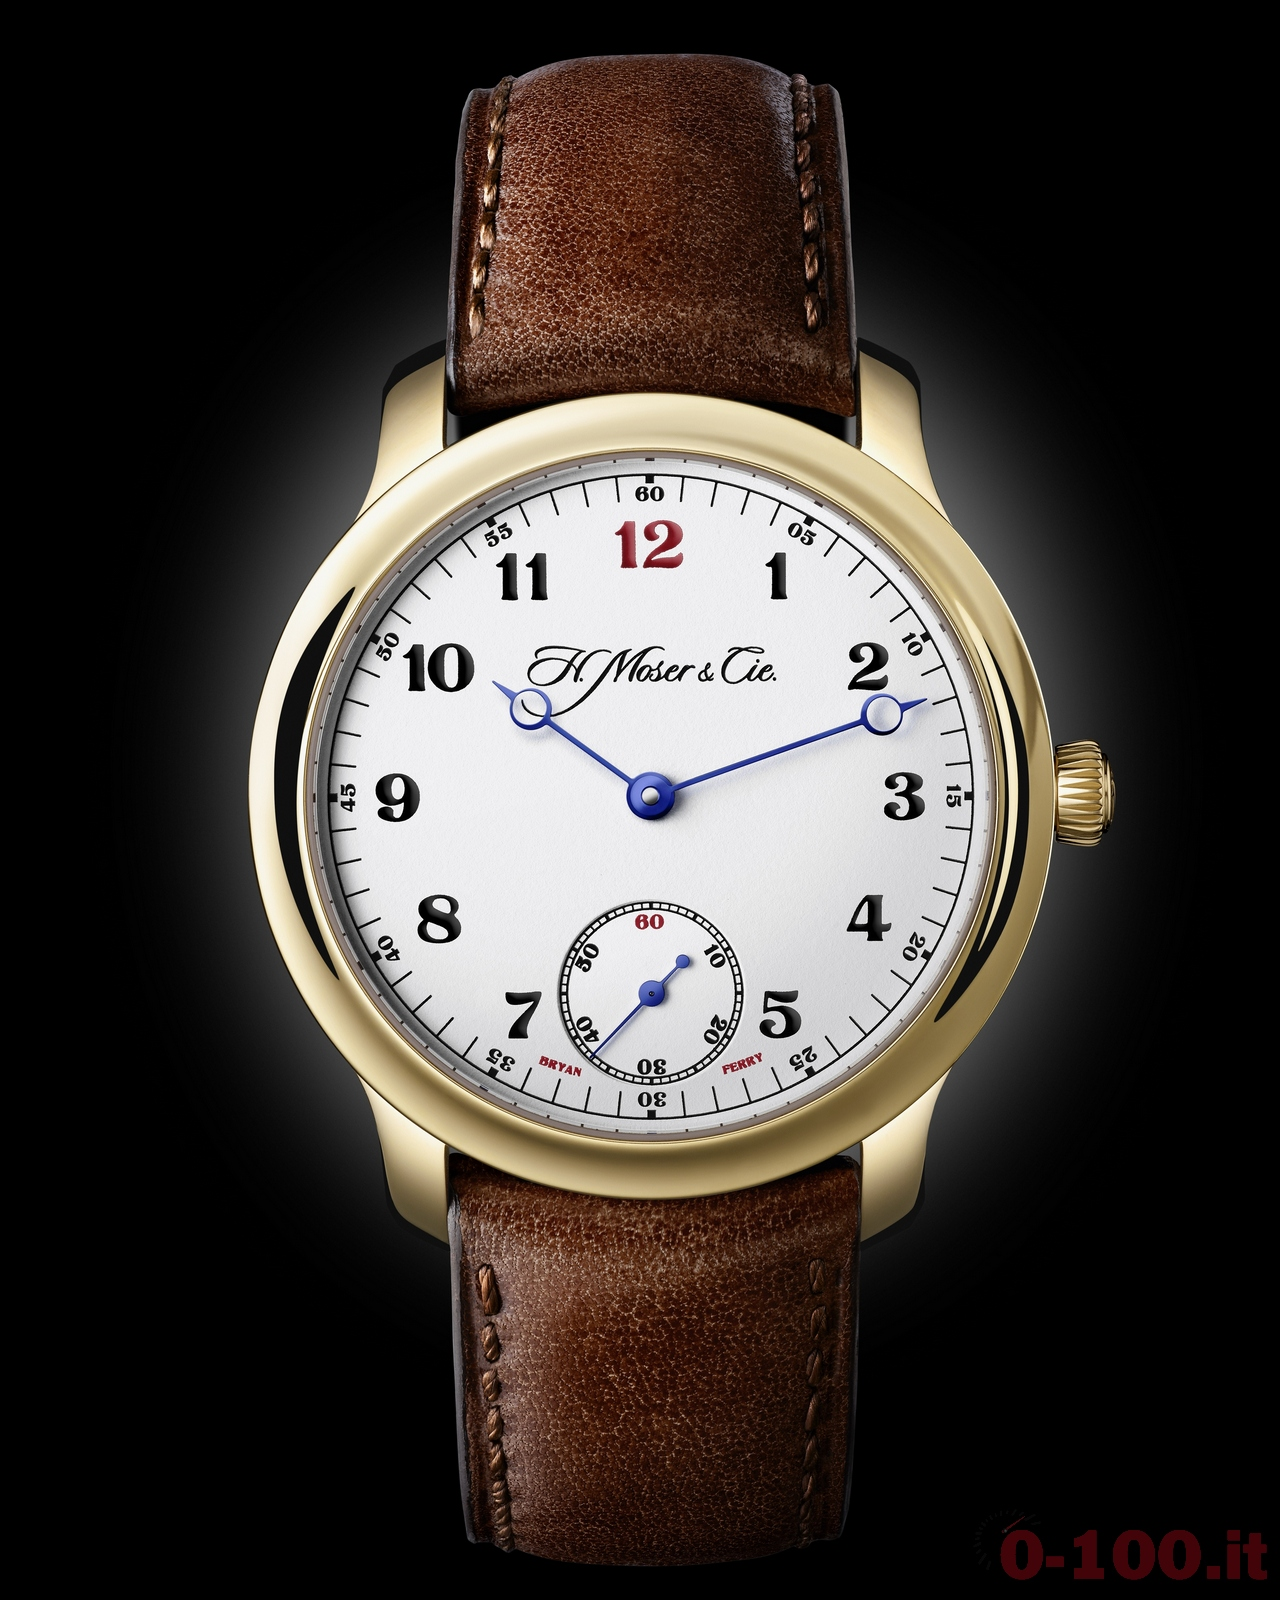 h-moser-cie-endeavour-small-seconds-bryan-ferry-limited-edition-ref-1321-0116_0-1004